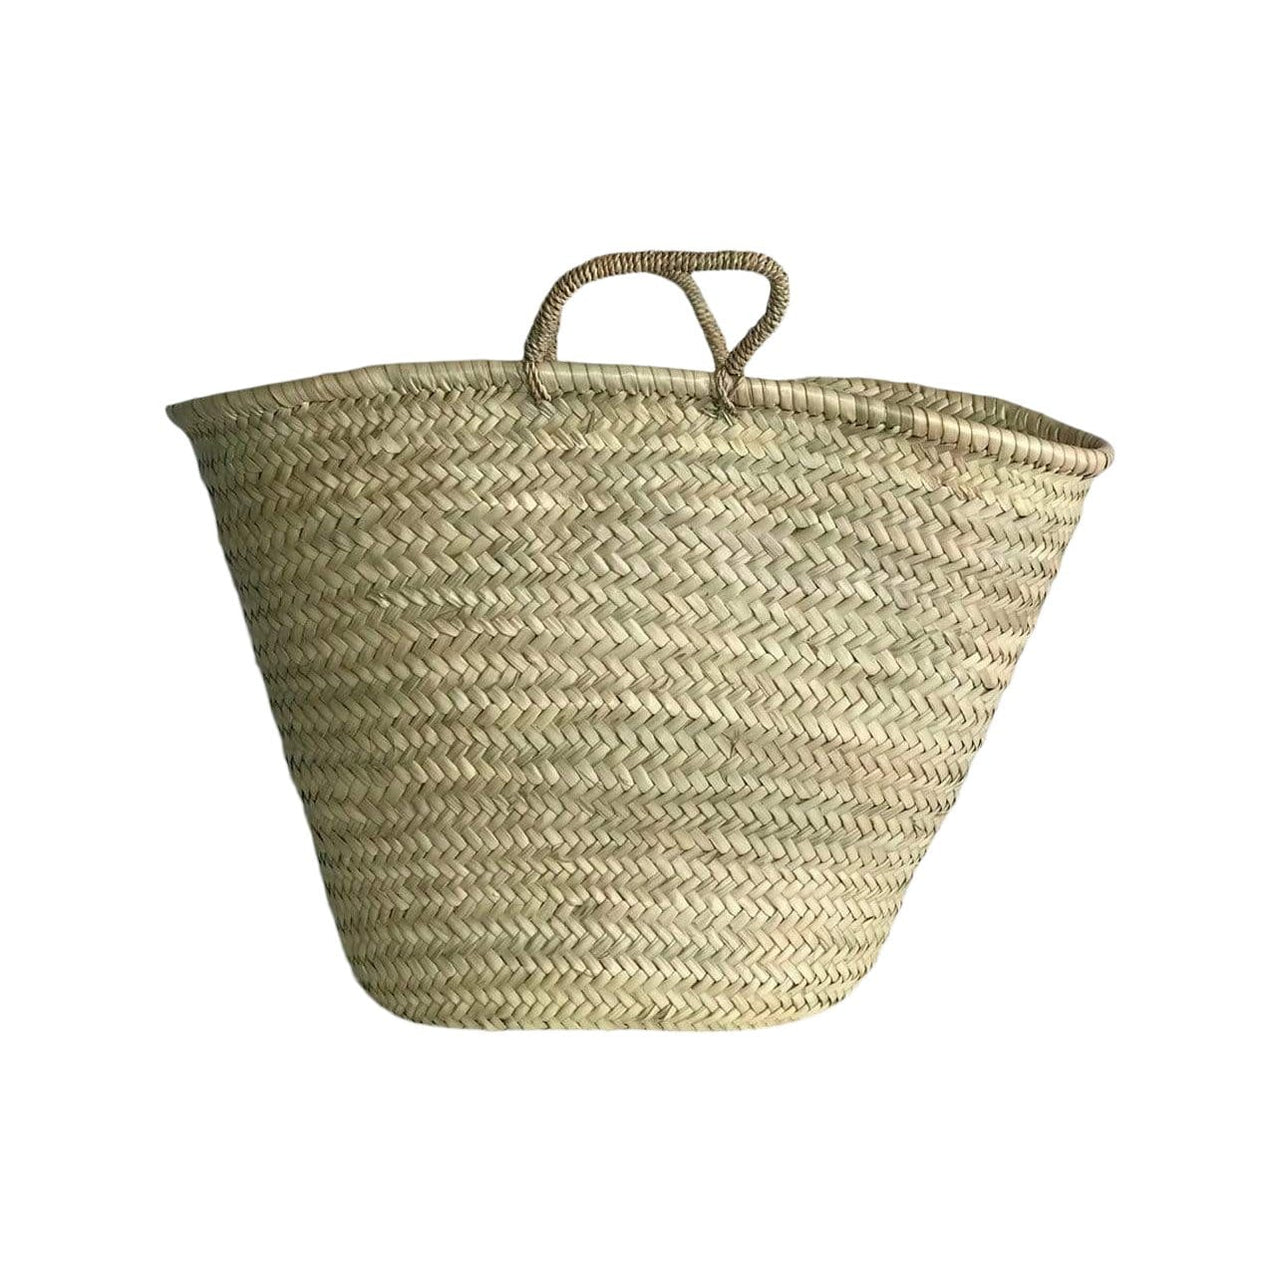 Verve Culture Baskets Vegan Palm Handle Moroccan Shopping Basket